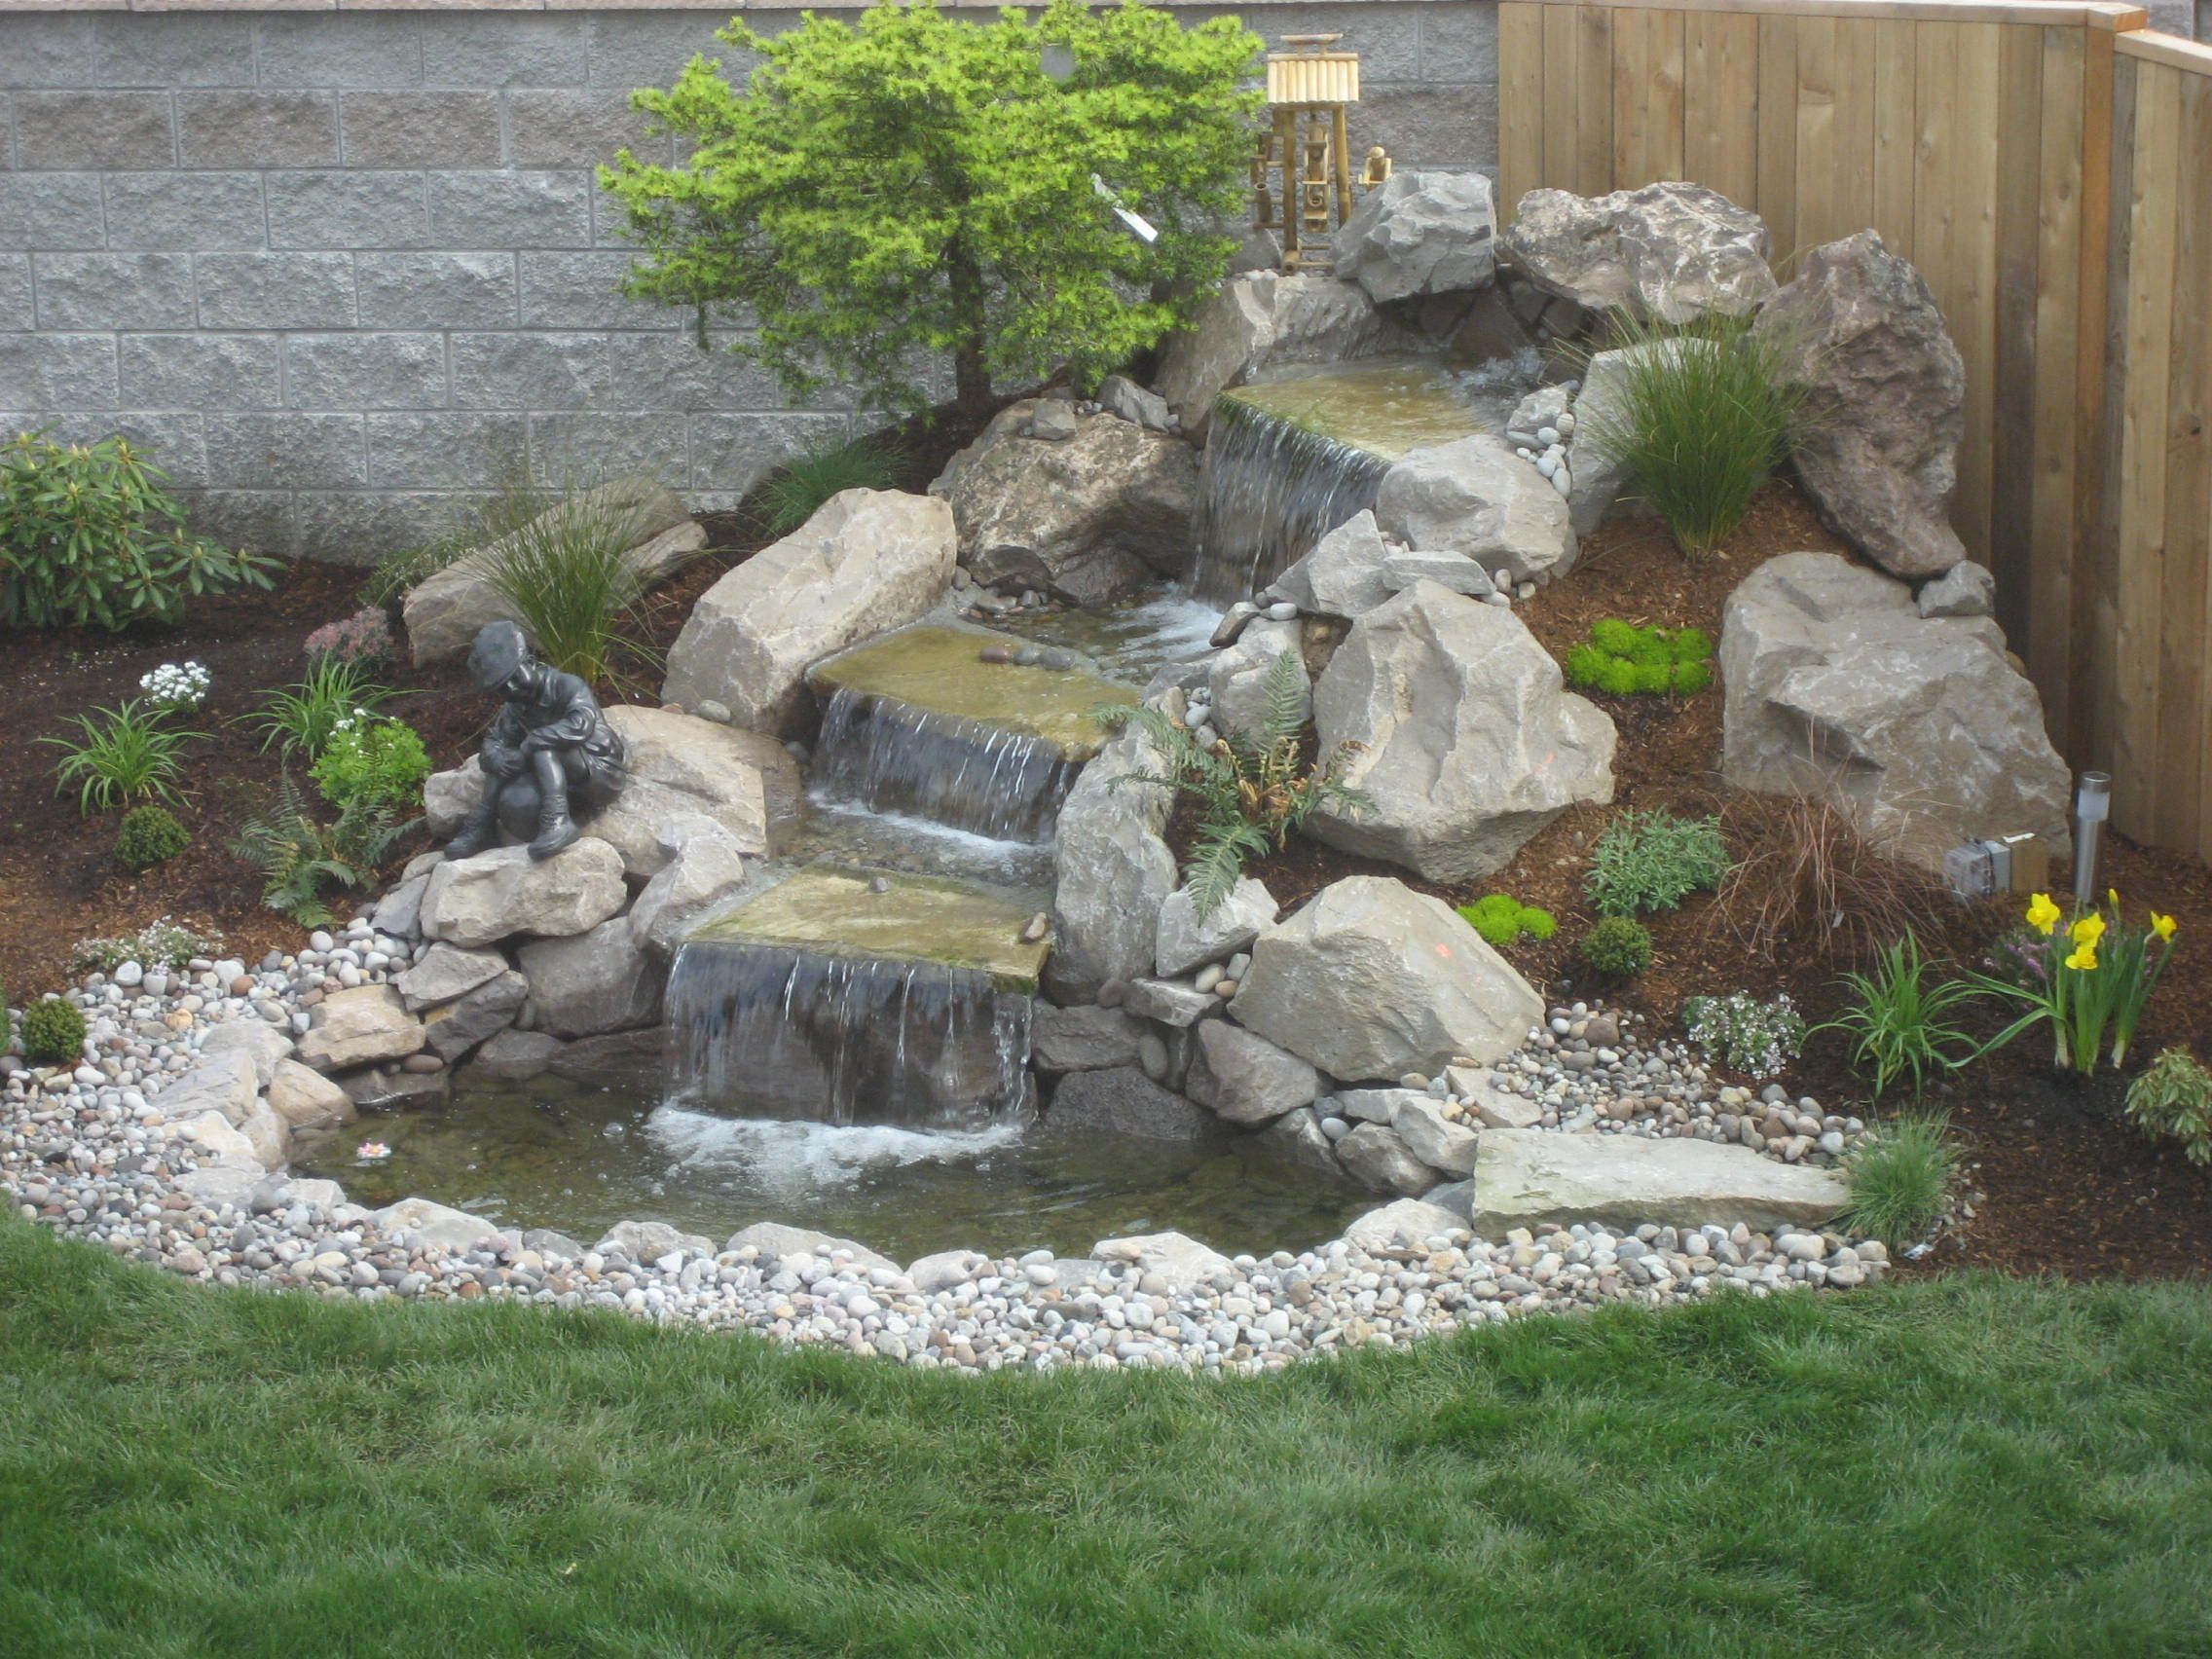 Landscape garden landscape design advice creating for Making a garden pond and waterfall